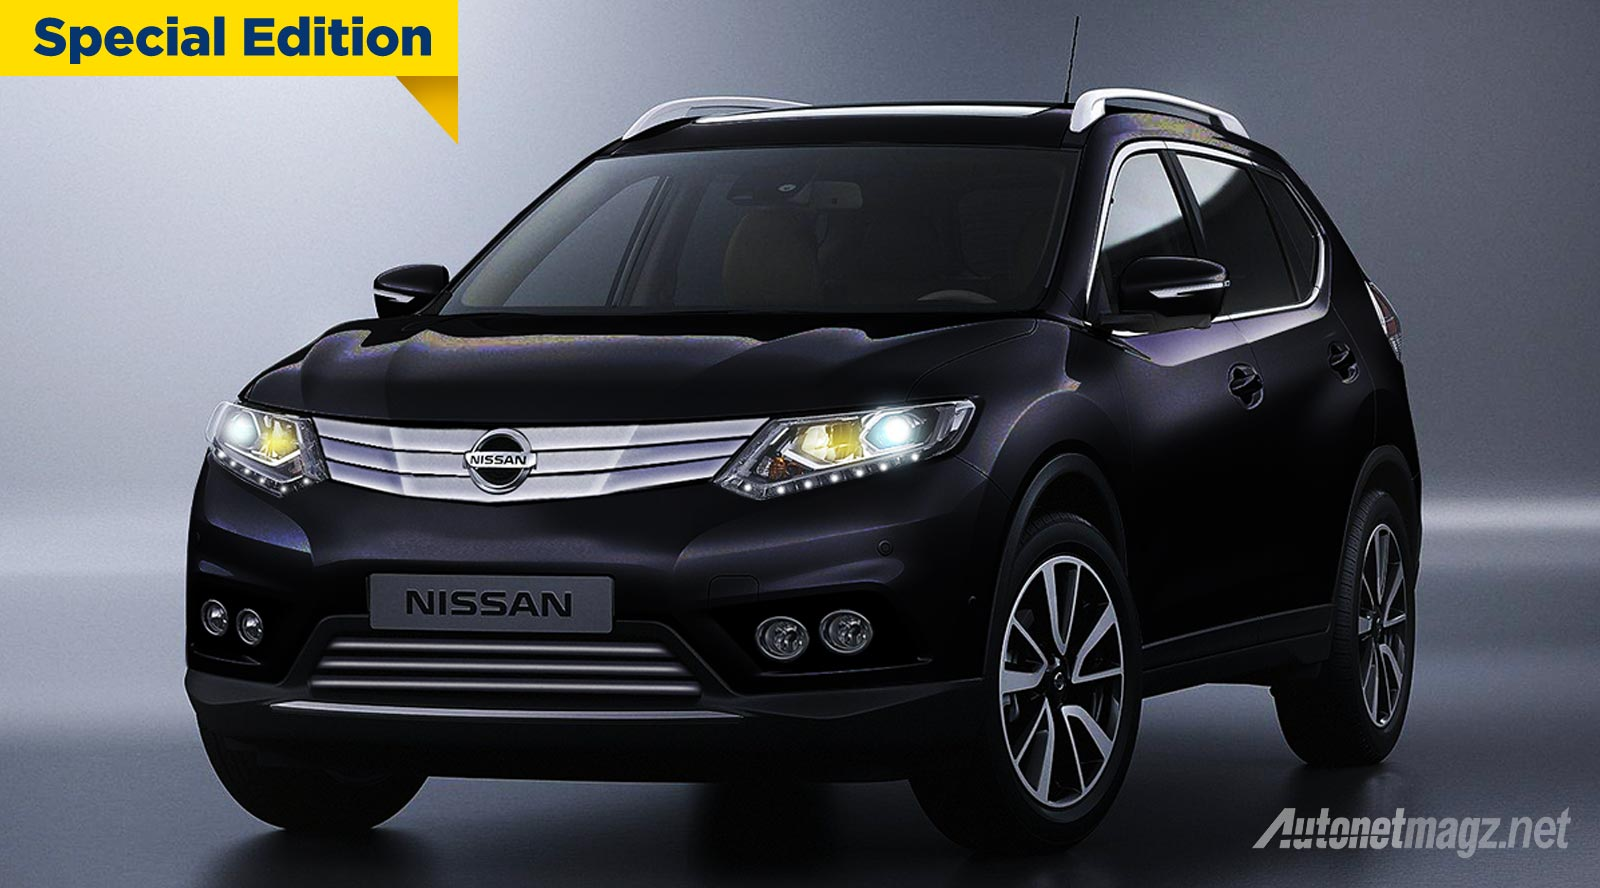 nissan x trail autech 2015 akan jadi varian termahal autonetmagz. Black Bedroom Furniture Sets. Home Design Ideas